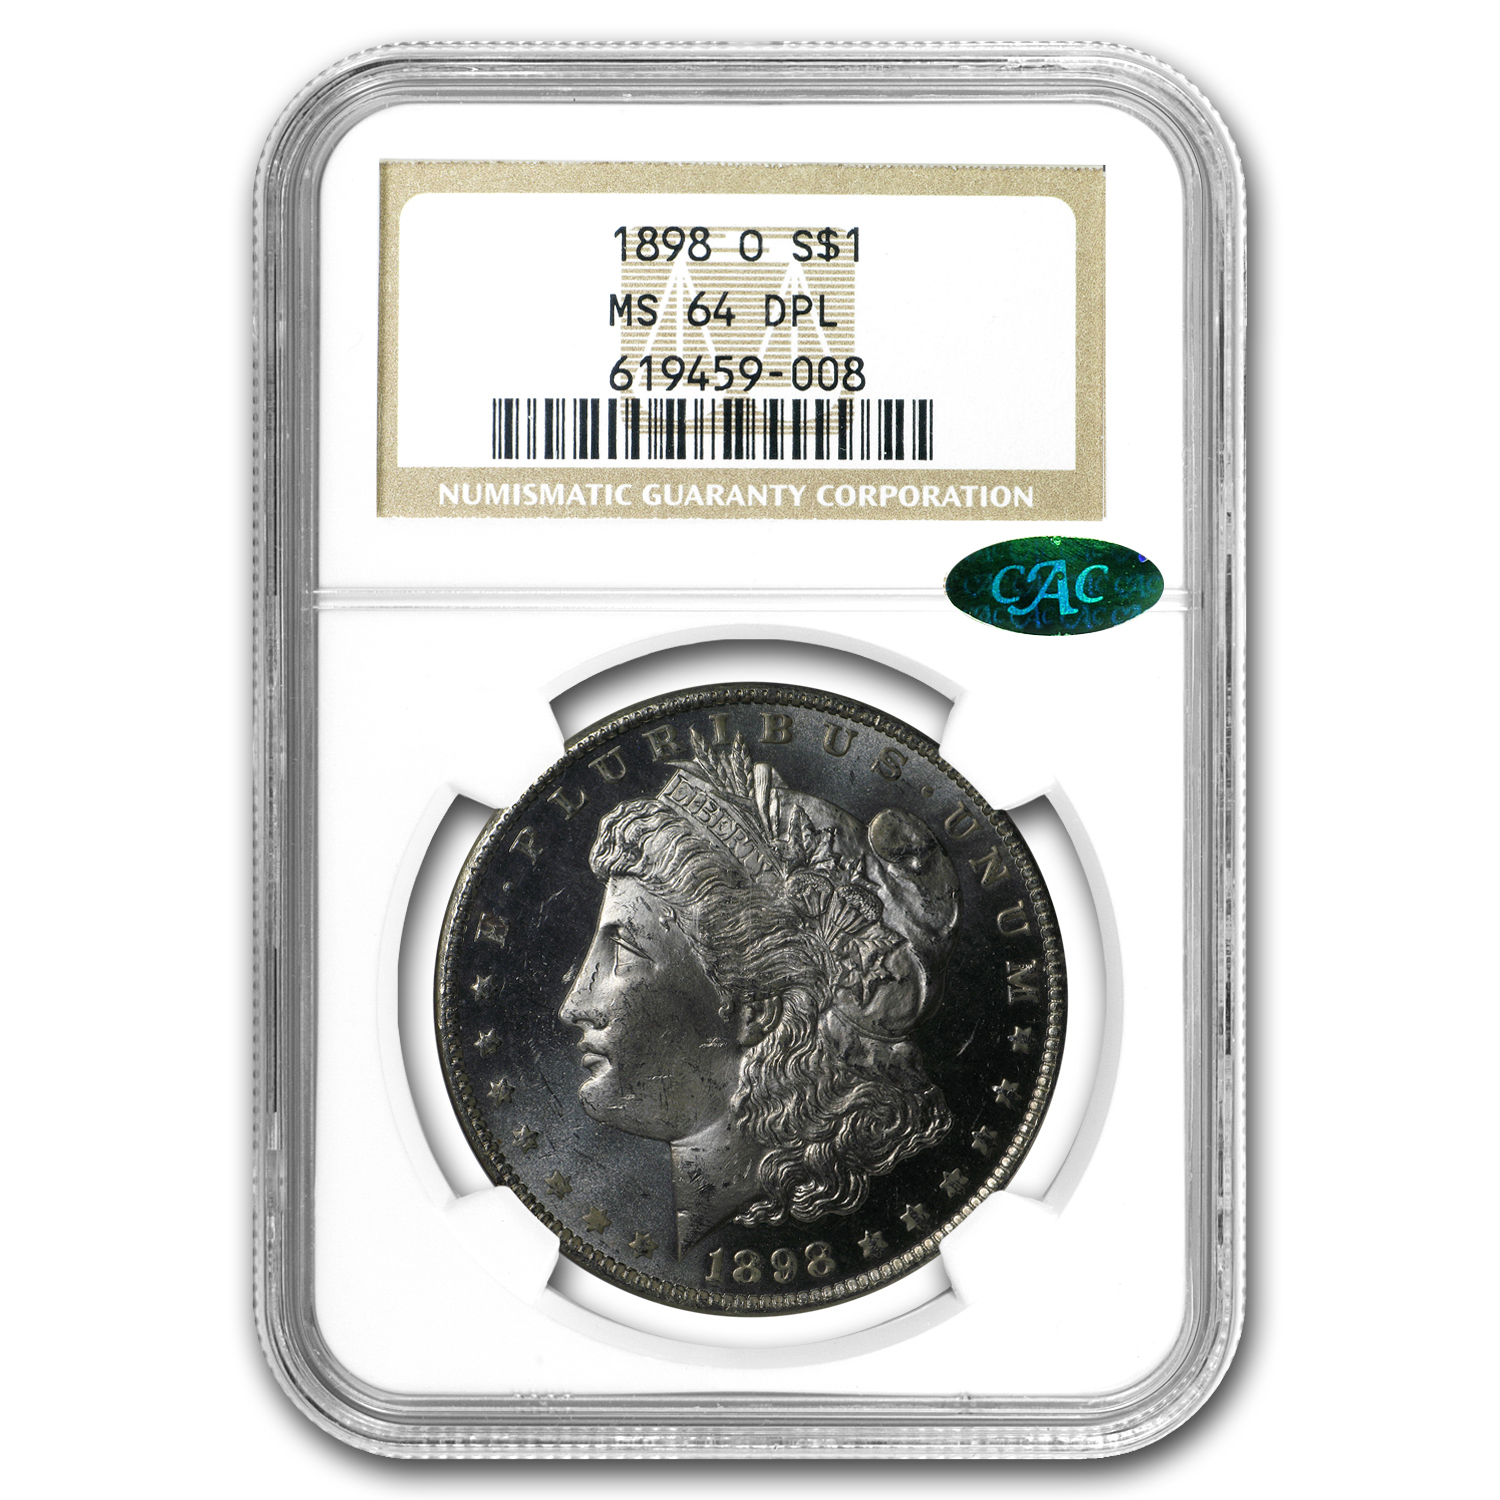 1898-O Morgan Dollar MS-64 DPL NGC CAC